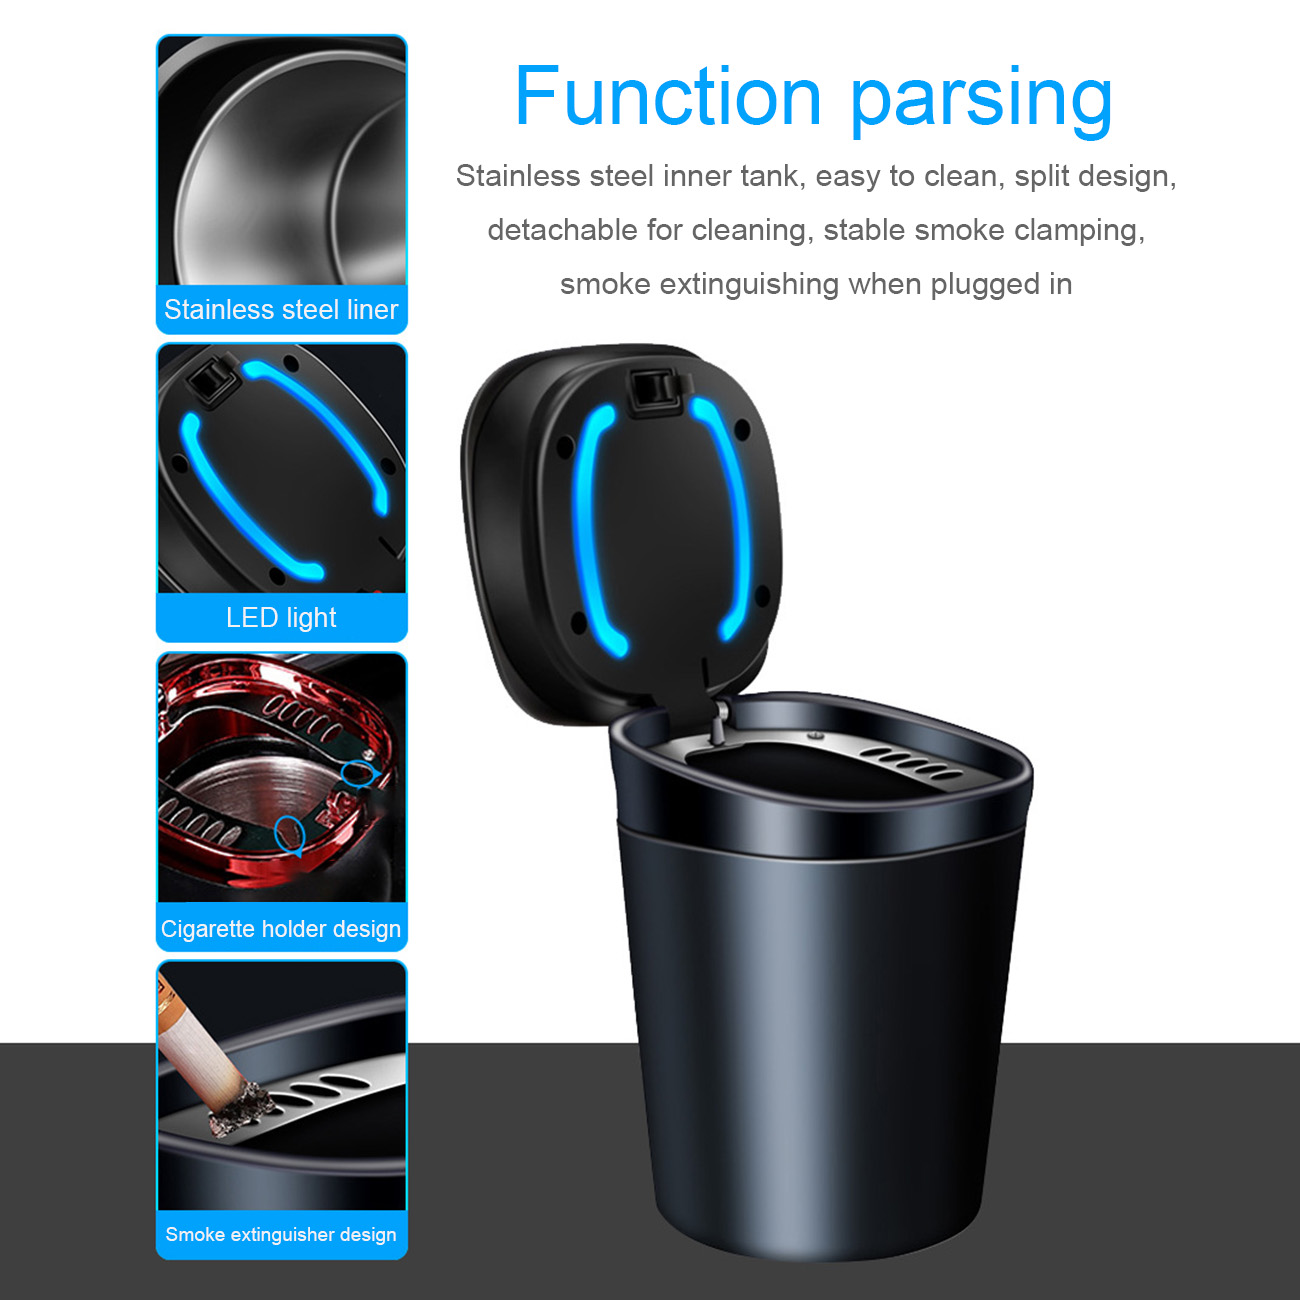 Car Ashtray with Detachable Lid Creative Portable Ashtrays with LED Light Decorative for Vehicle Automotive Interior Accessories